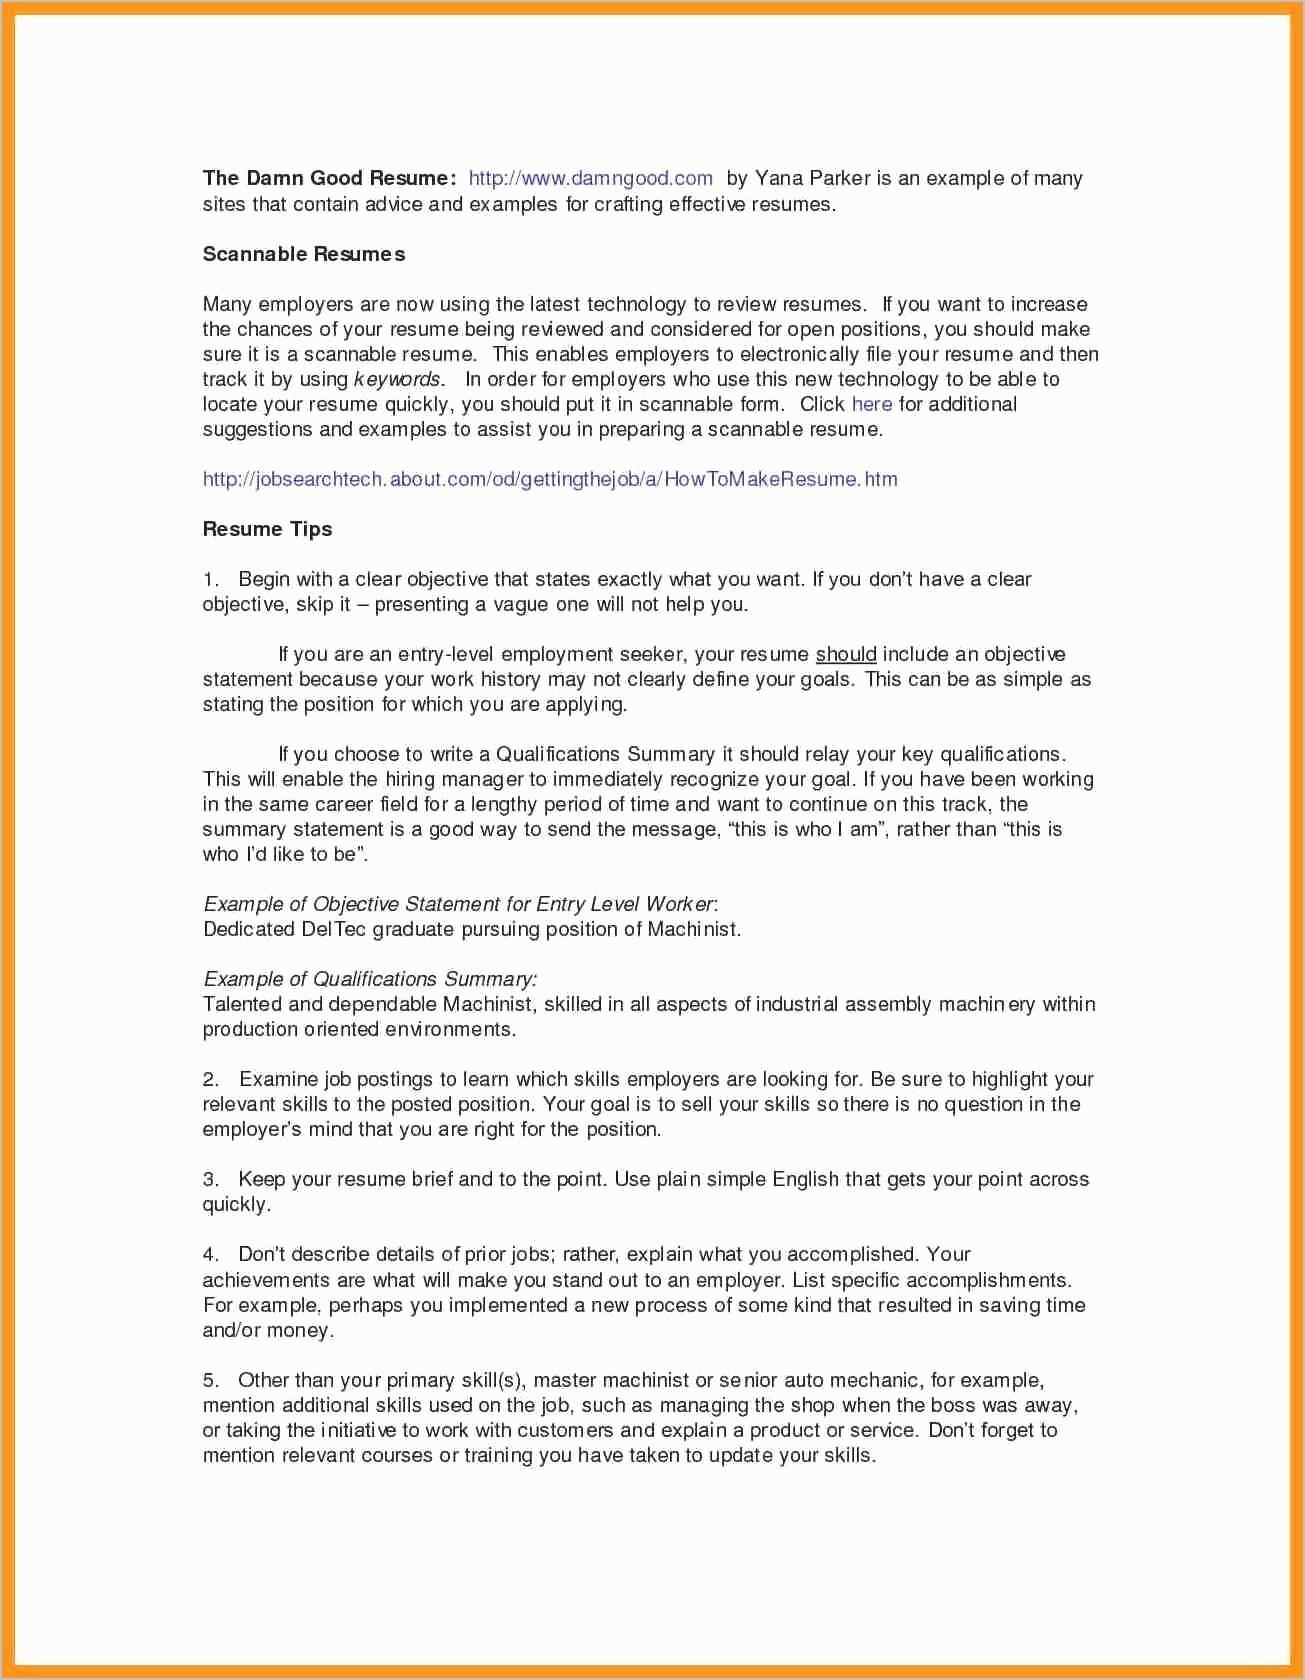 Resume Names that Stand Out Examples - Objective Statement Resume Examples Best Resume Profile Summary